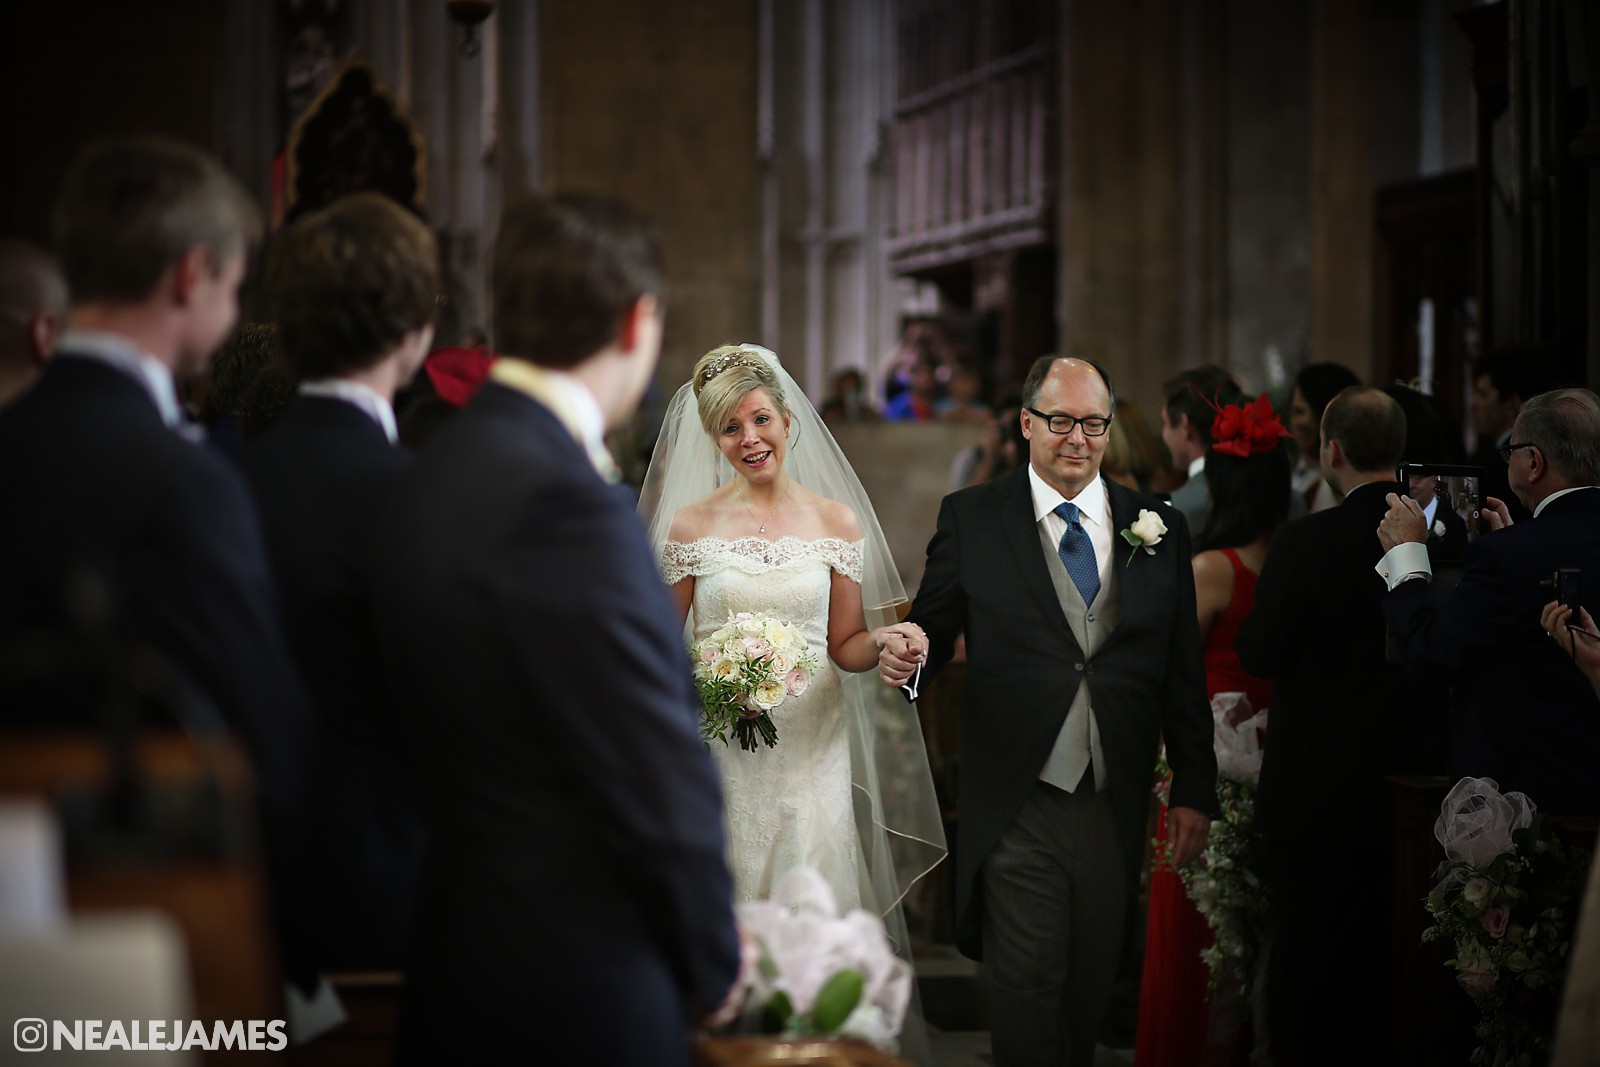 Colour picture of a bride being lead into a wedding chapel ceremony by her father